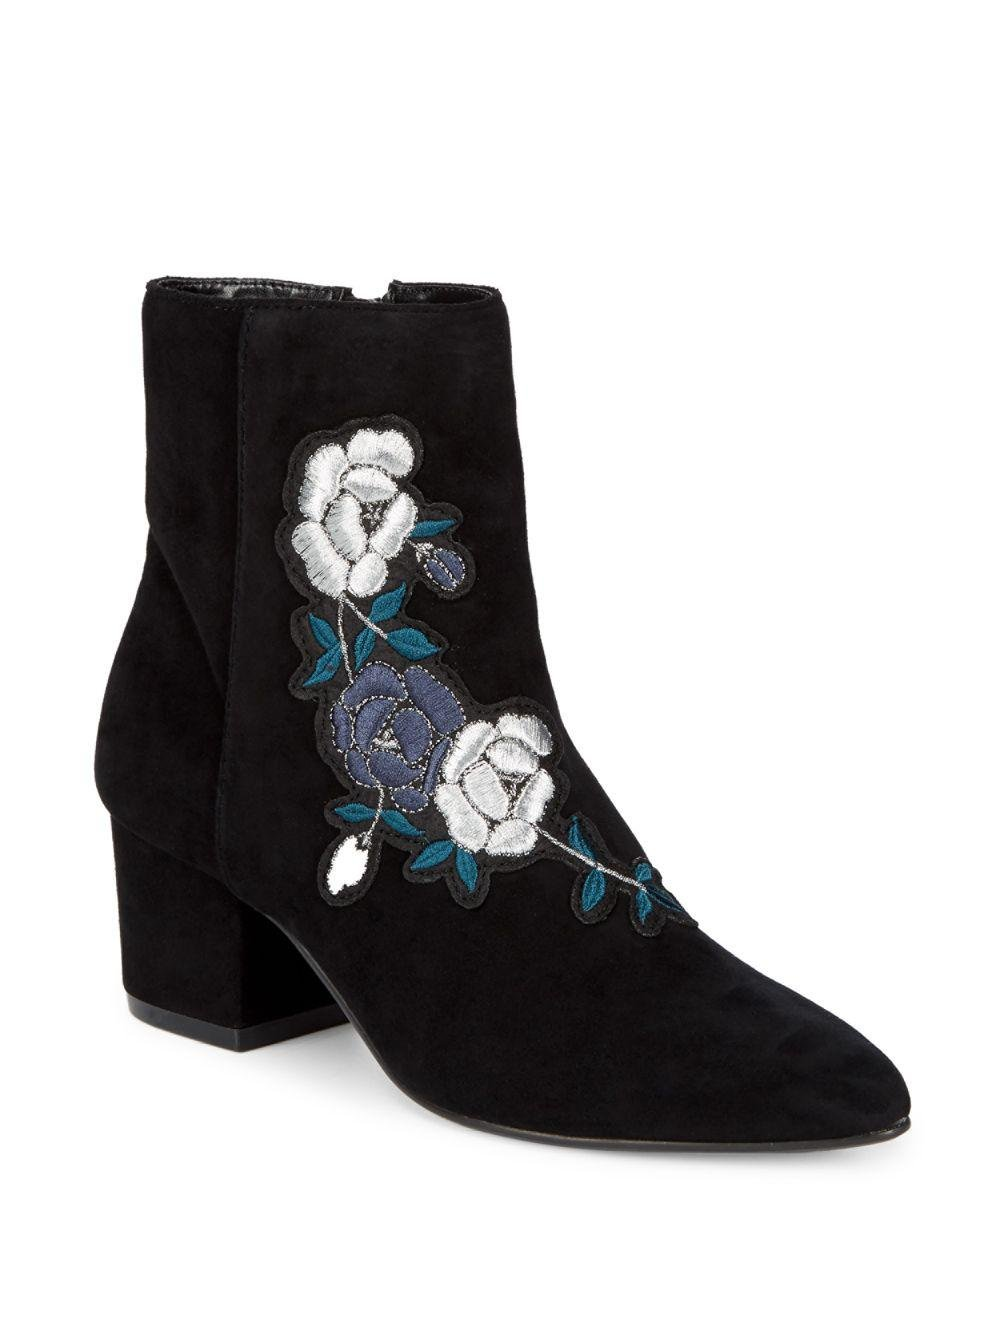 5714f1ad3df Steven by Steve Madden. Women s Black Brooker Suede Embroidered Ankle Boots